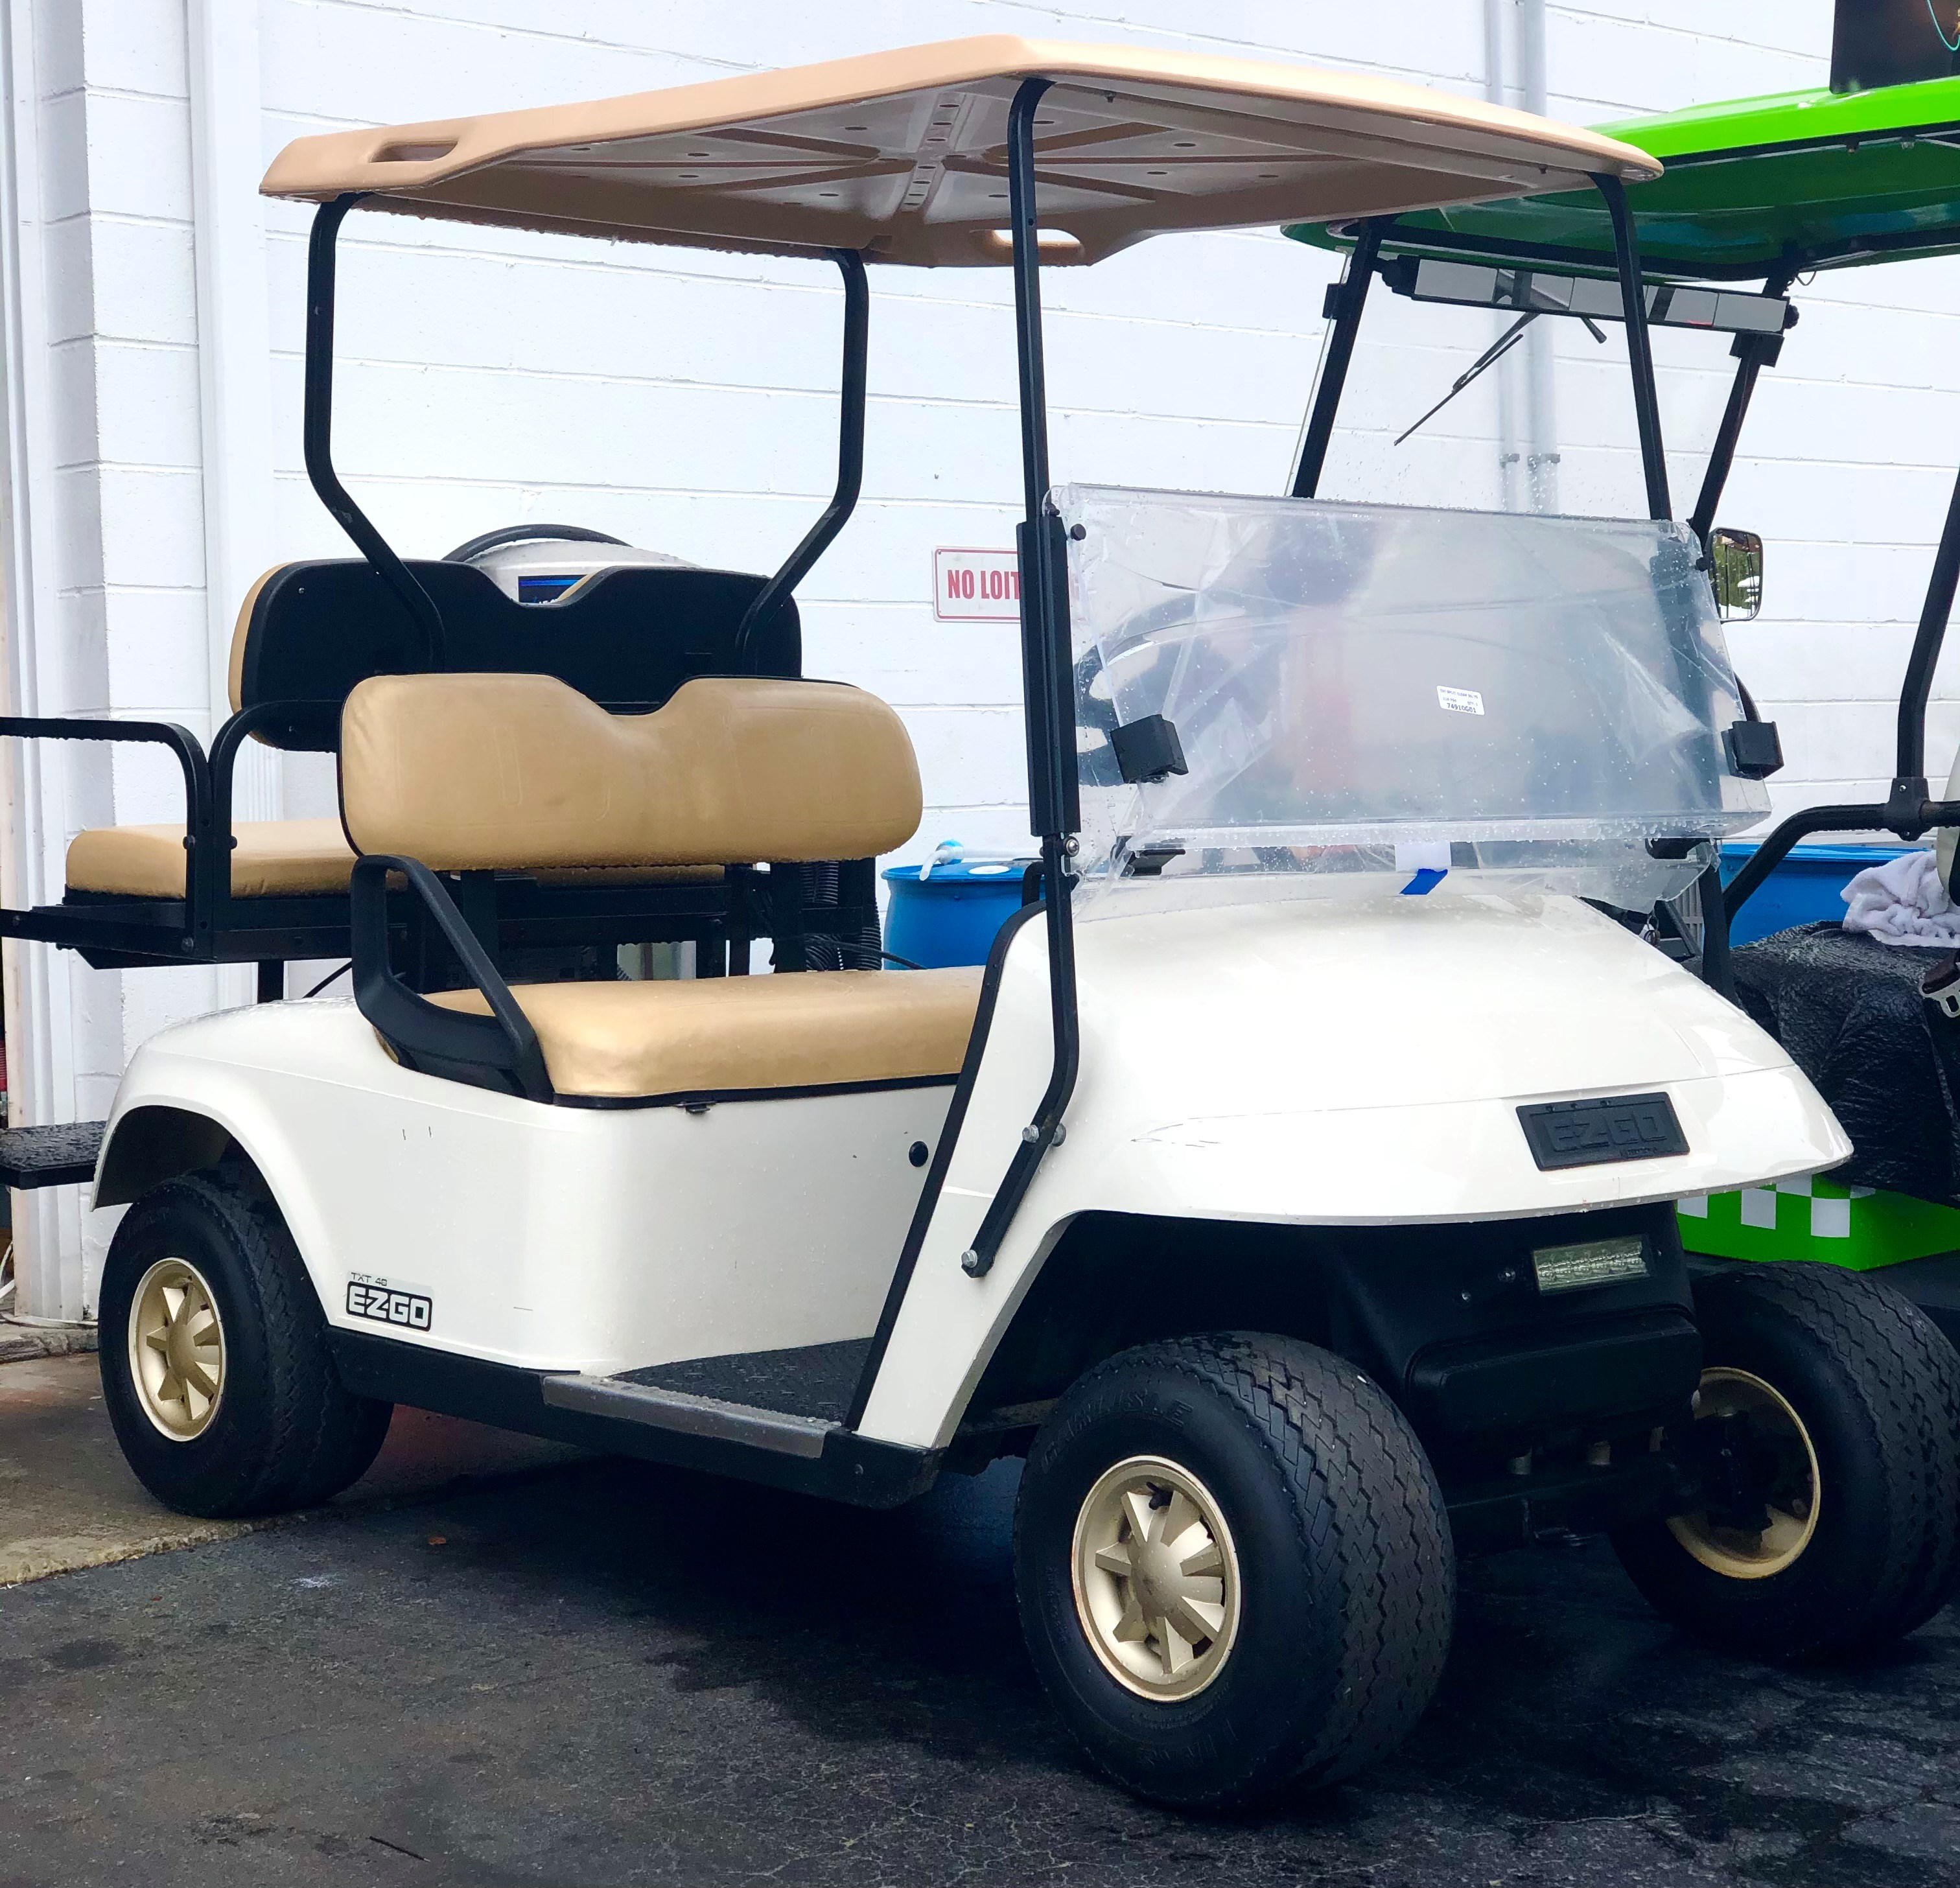 USED 2011 EZGO 4 PASSENGER WITH 2017 BATTERIES-MULTIPLE AVAILABLE (GOOD CONDITION)